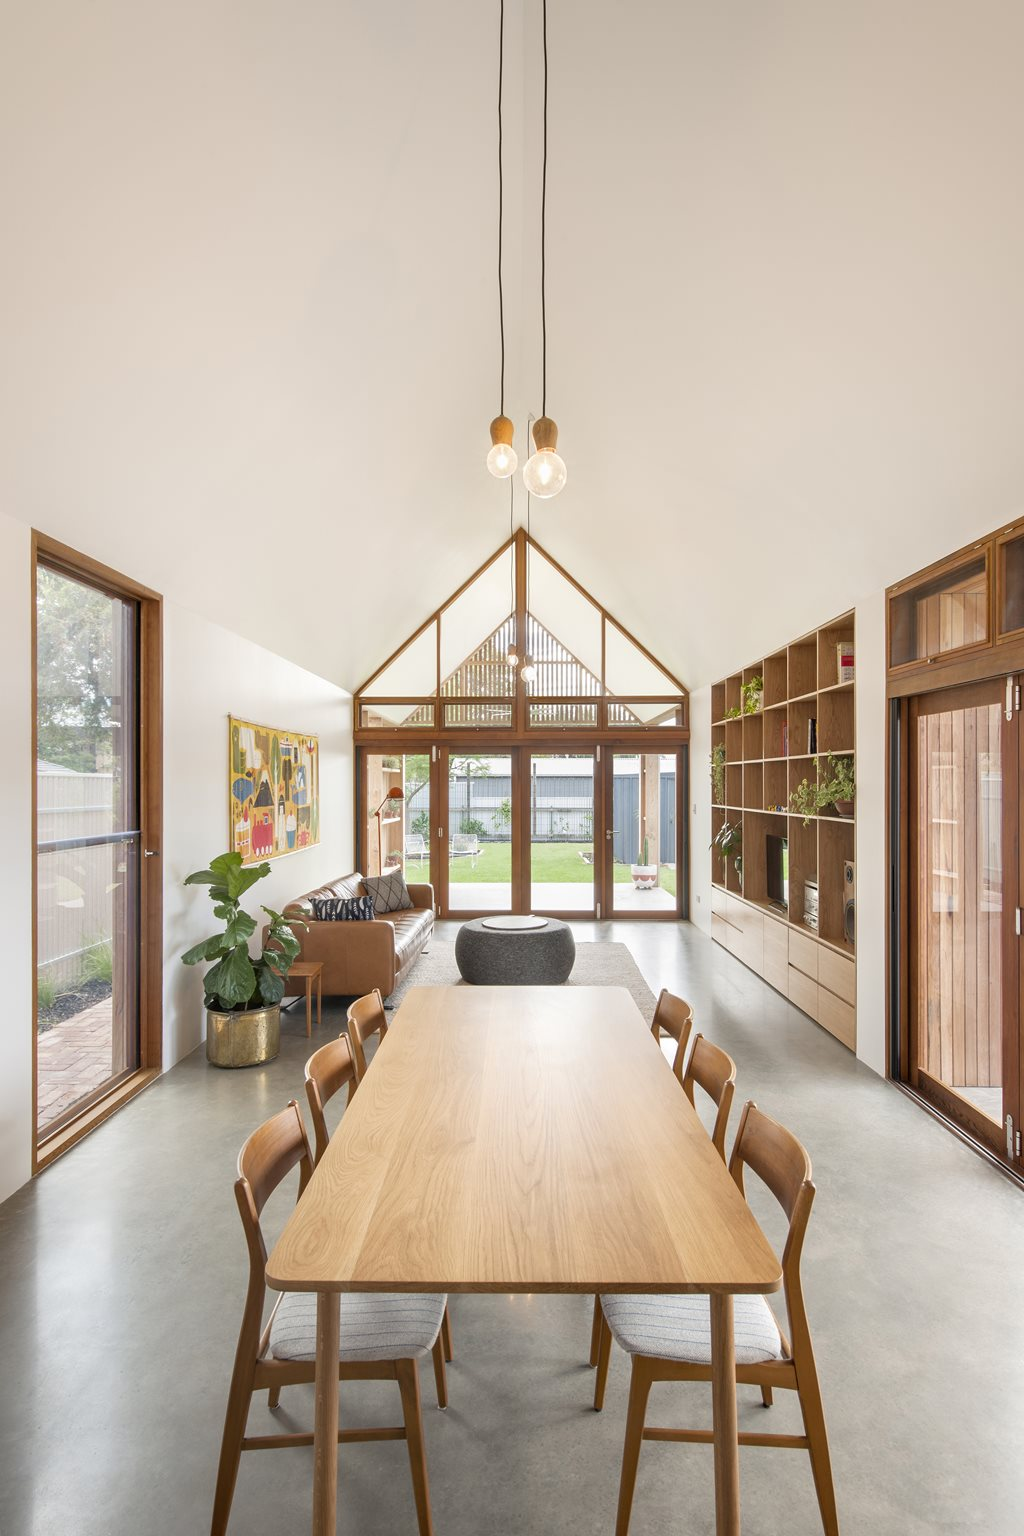 Residential Interior Project Has Modern Yet Vintage Take: Adelaide Home Extension Explores Vernacular For Modern Day